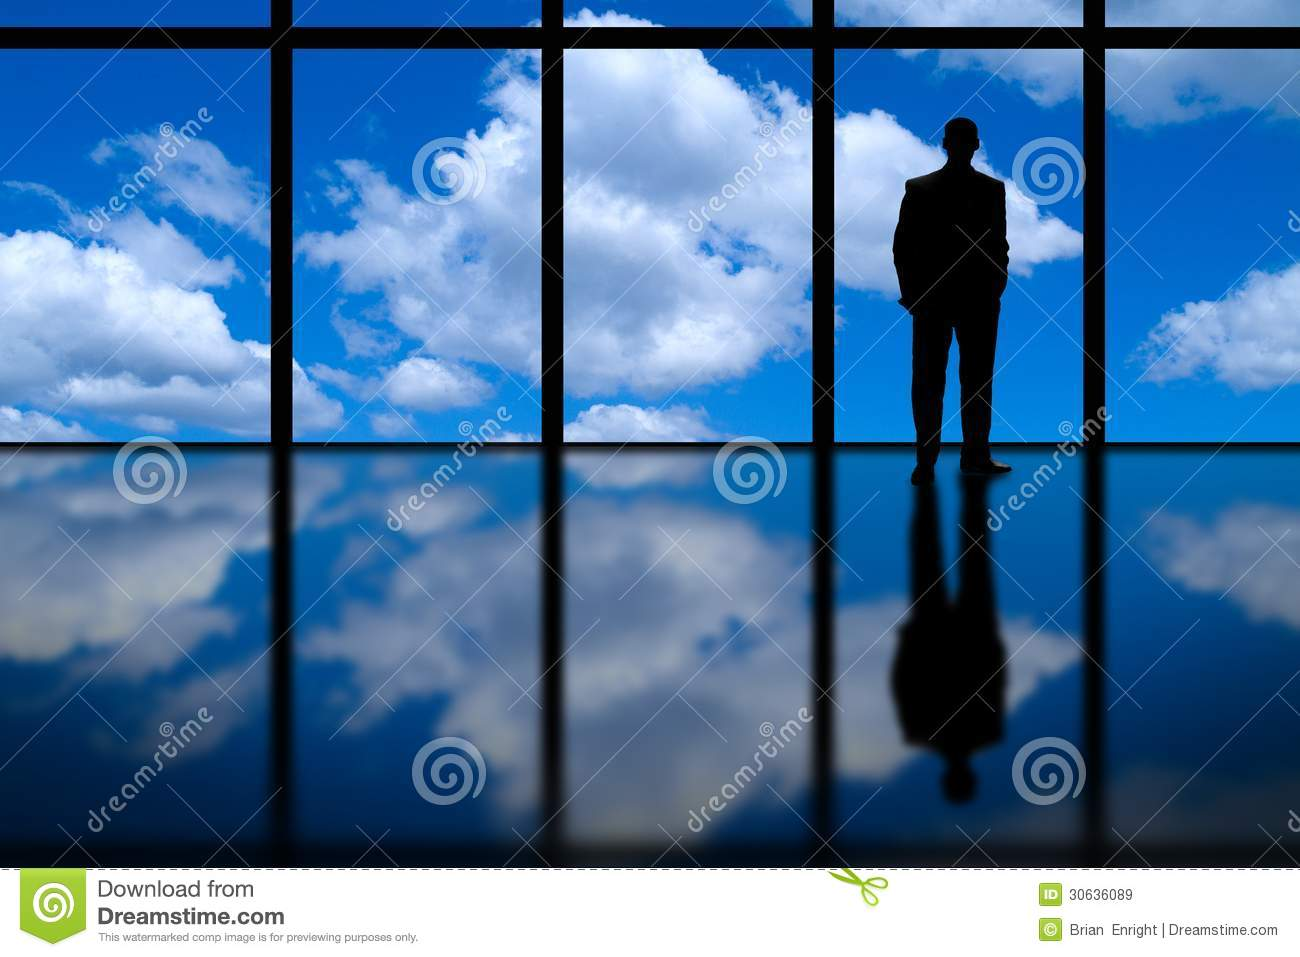 Business Man Looking Out of High Rise Office Window at Blue Sky and Clouds